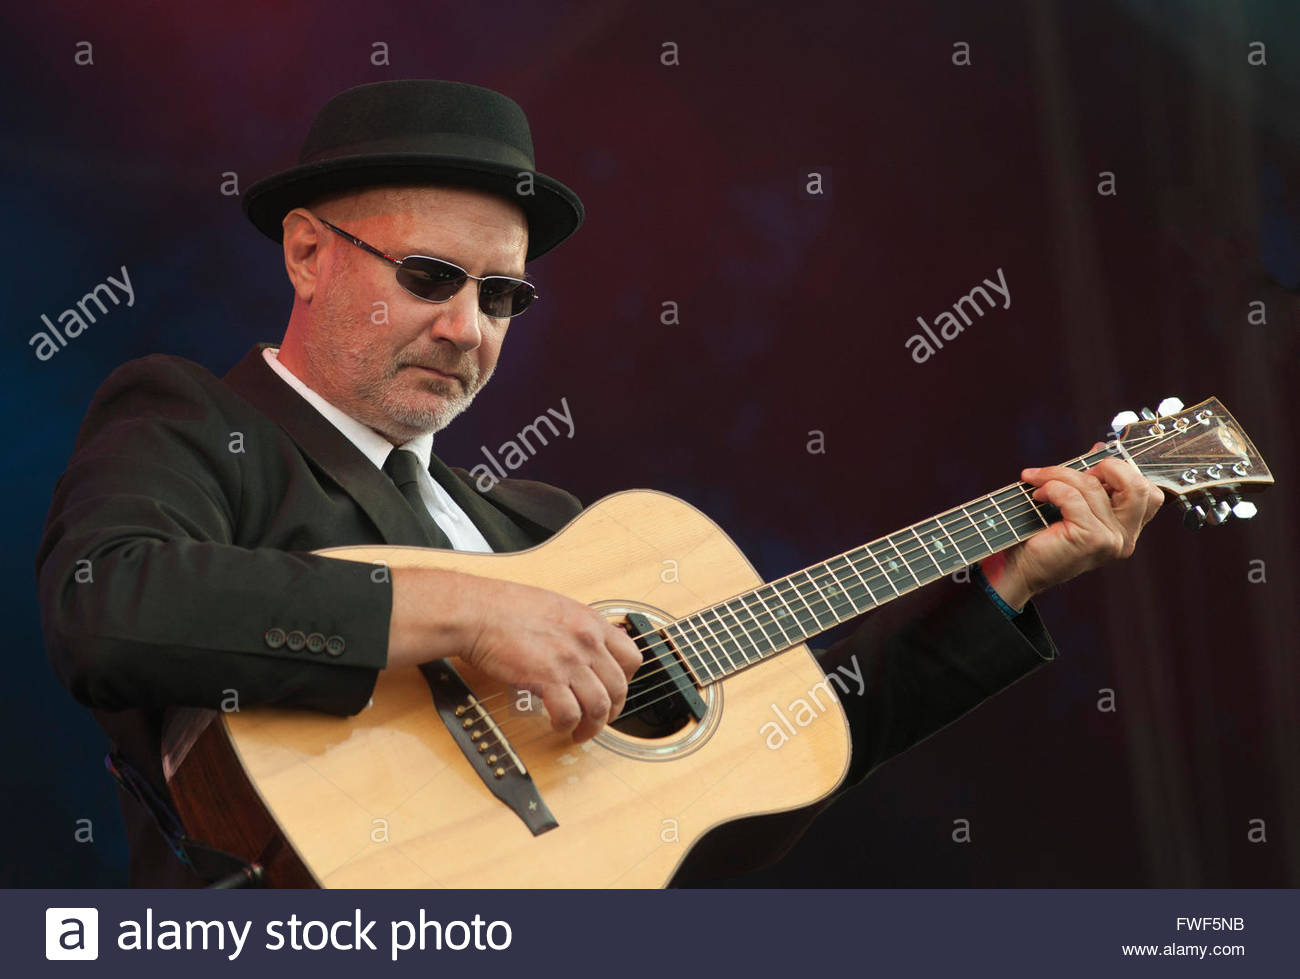 Keith Donnelly performing at the Fairport's Cropredy Convention, Oxfordshire, UK, 12 August 2010. - Stock Image